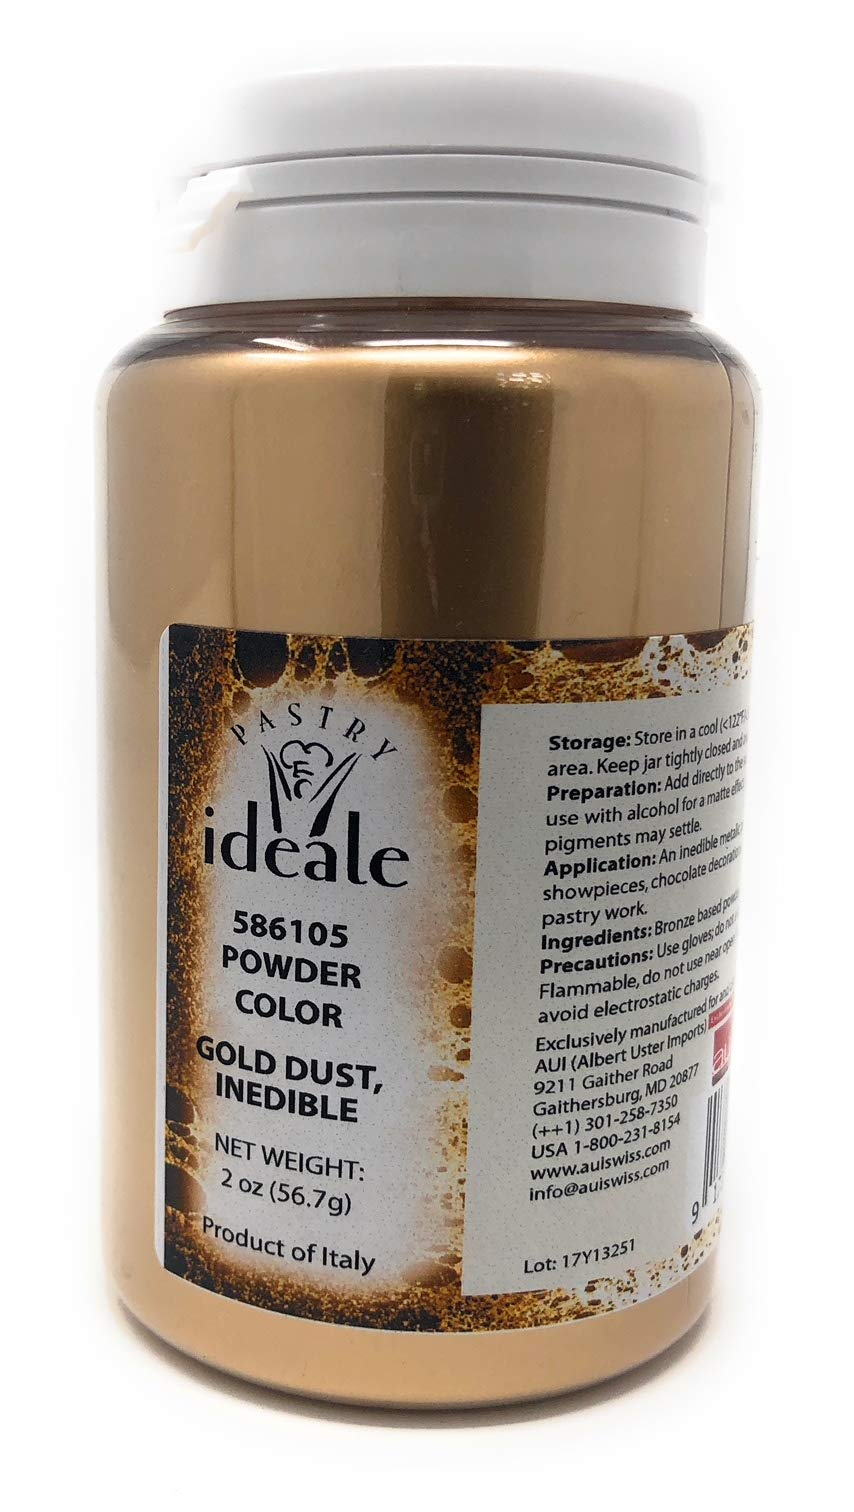 Pastry Ideale Gold Dust 1 Use this inedible metallic powder for decorative pastry work, wedding cakes, showpieces, and al... 2 ounce/56 gram container Size: 2 oz